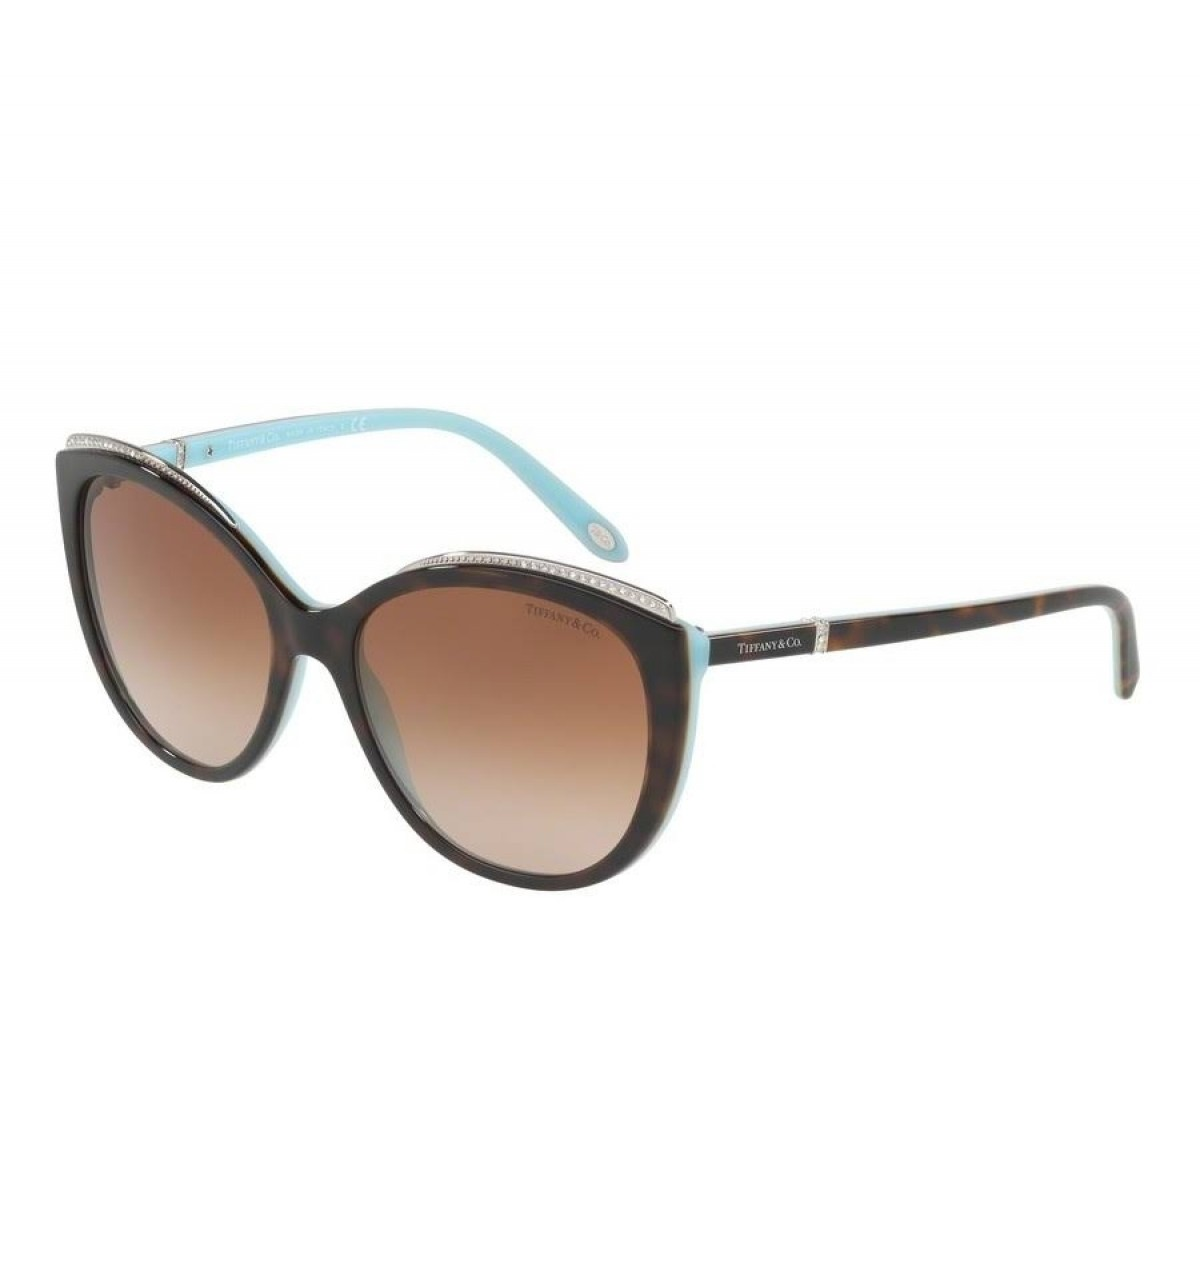 Tuffany 4134 81343B 56, 185,98 €, Occhiali Tiffany & Co. Marrone a forma Farfalla